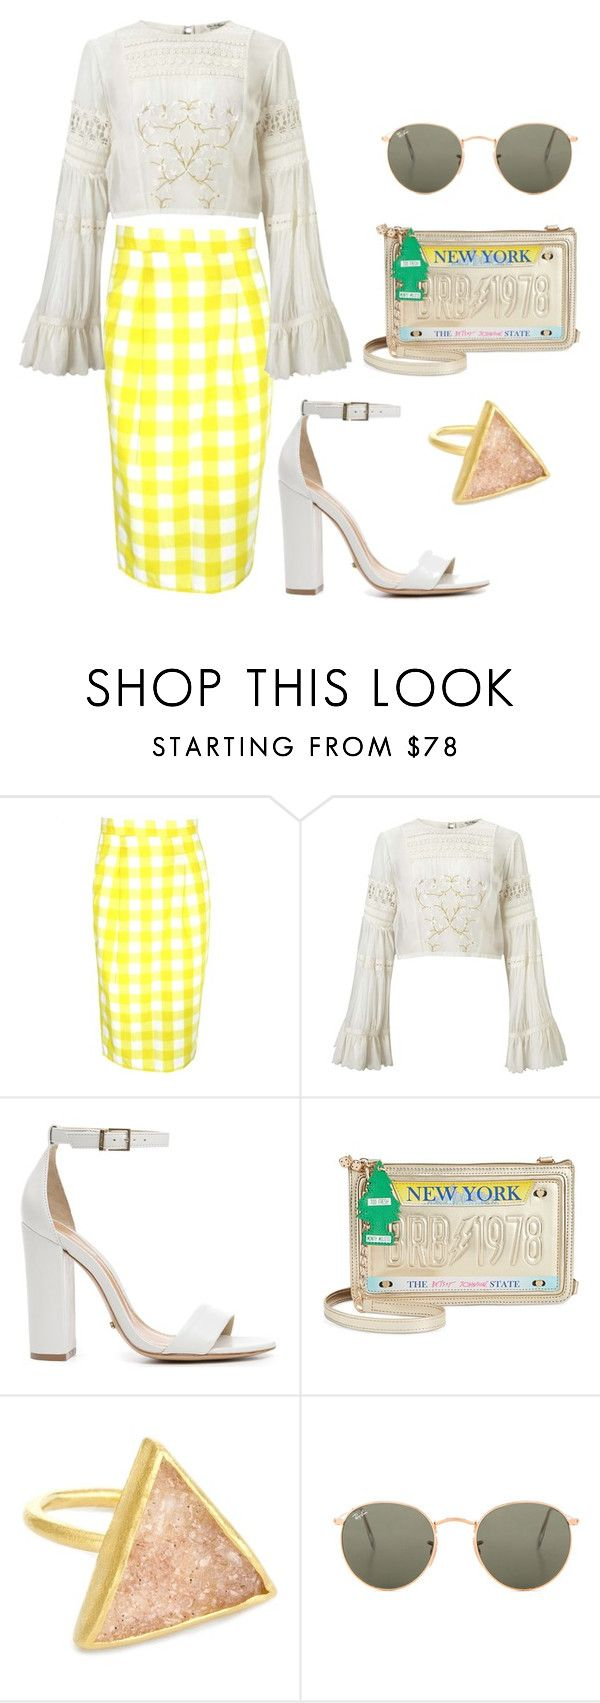 """""""Jealousy Incarnate Inspired Outfit #Kdrama"""" by indirag on Polyvore featuring Miss Selfridge, Schutz, Betsey Johnson and Ray-Ban"""